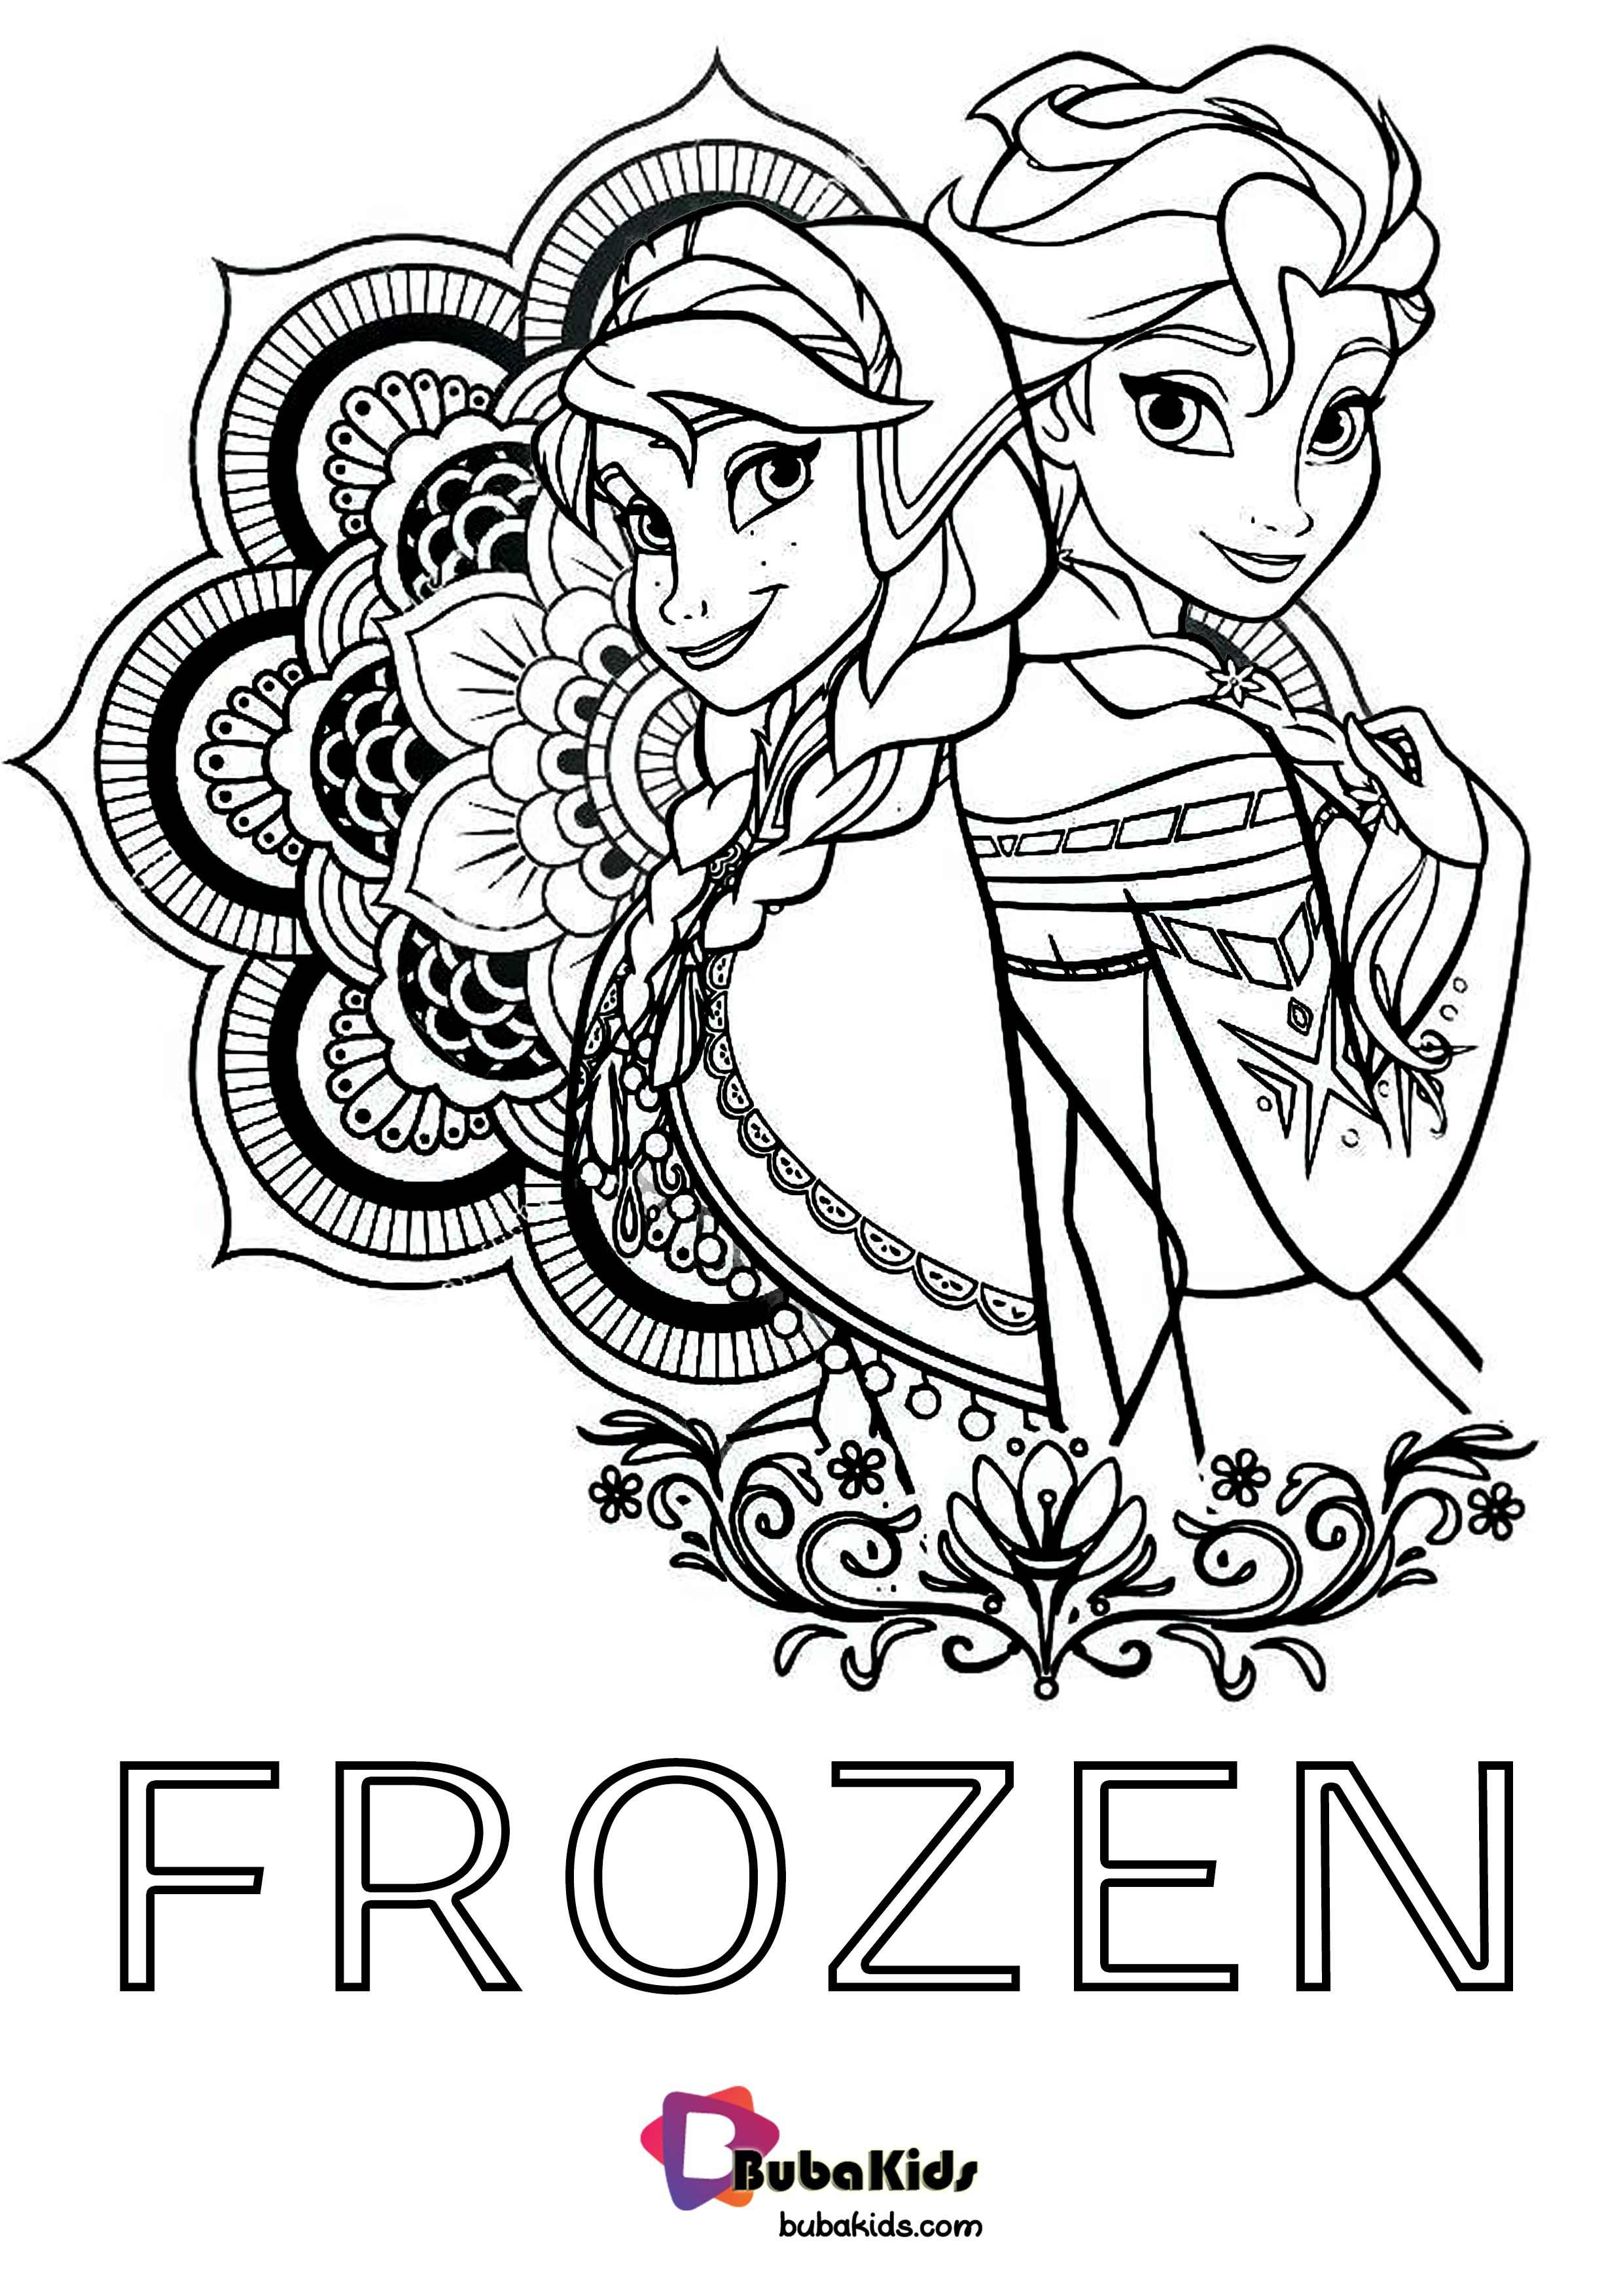 Frozen Princess Coloring Pages Printable Free Elsa Princess Elsa Princess Cartoon Colo Princess Coloring Pages Elsa Coloring Pages Disney Coloring Pages